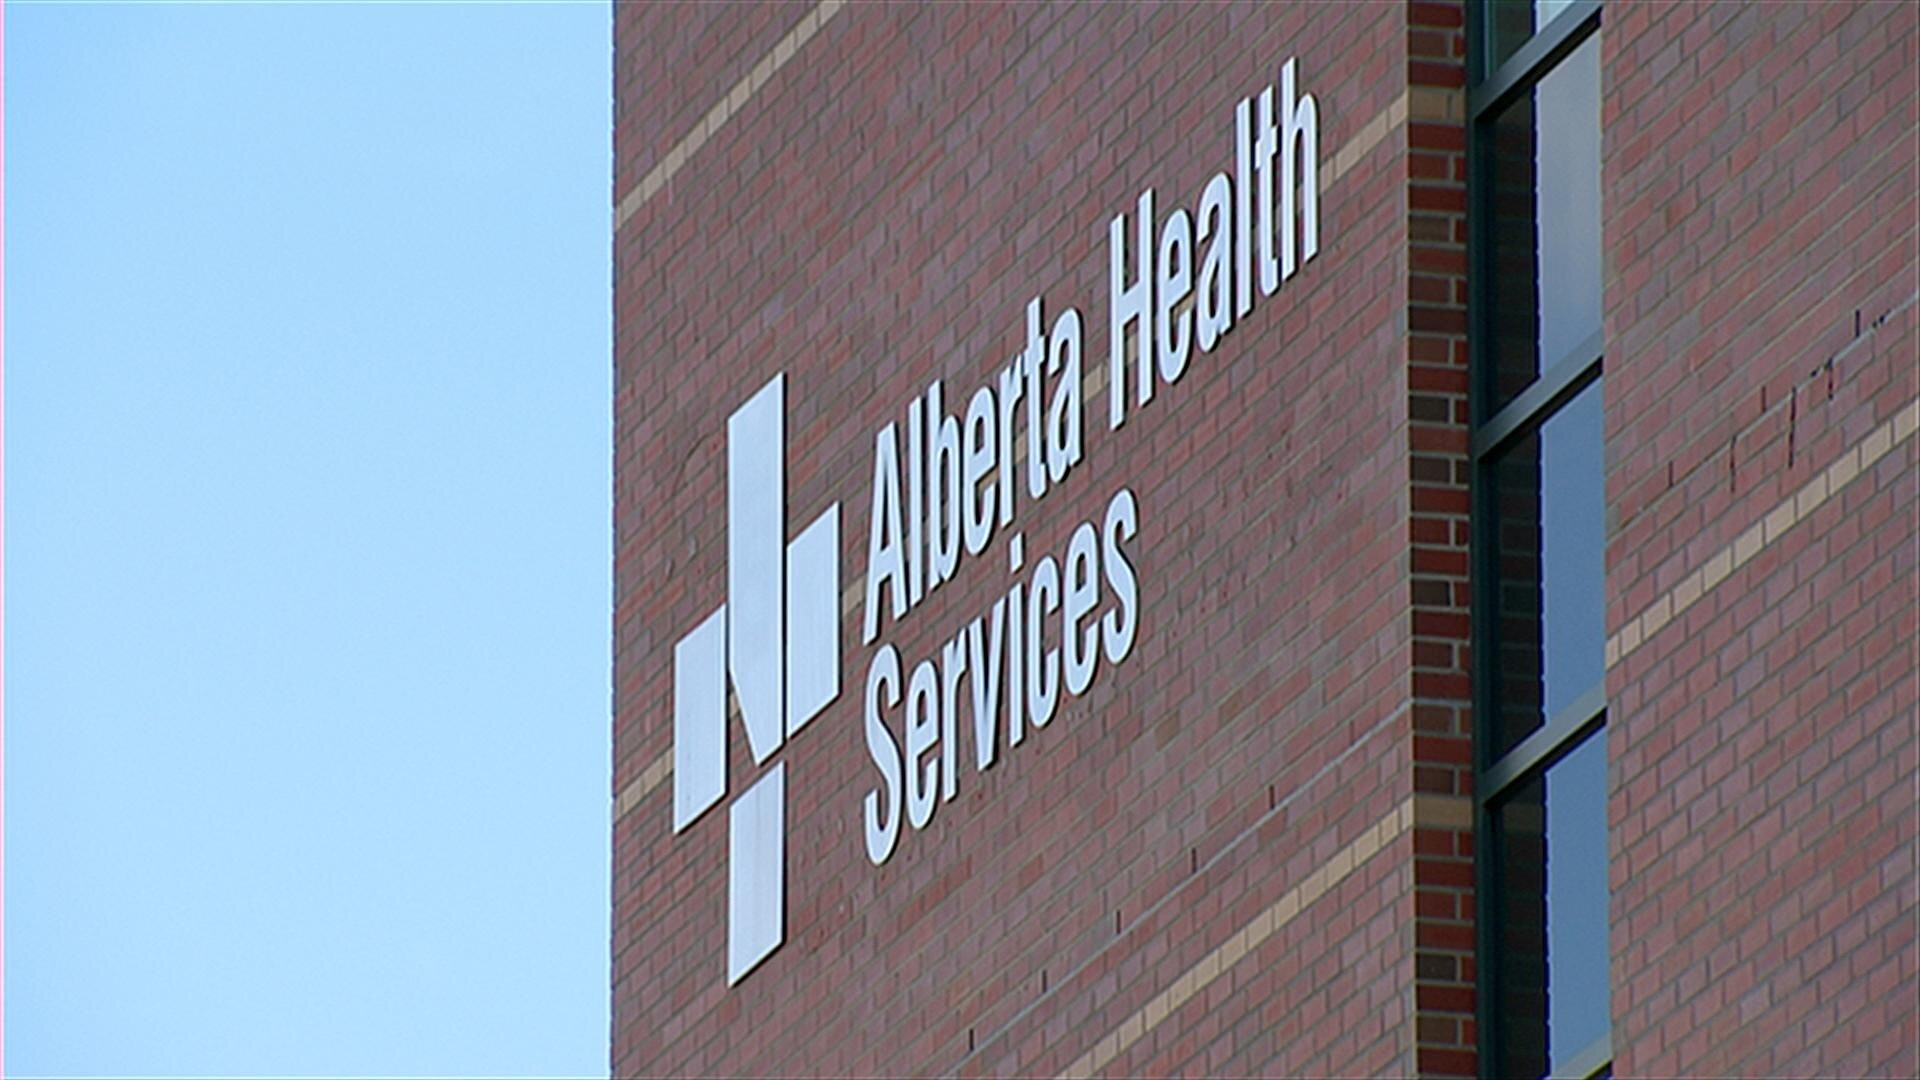 Under the plan, AHS would reduce part-time nursing positions, impacting nearly 1,600 nurses. It would eliminate between 1,200 and 1,870 full-time equivalent nursing and clinical support jobs. (CBC)